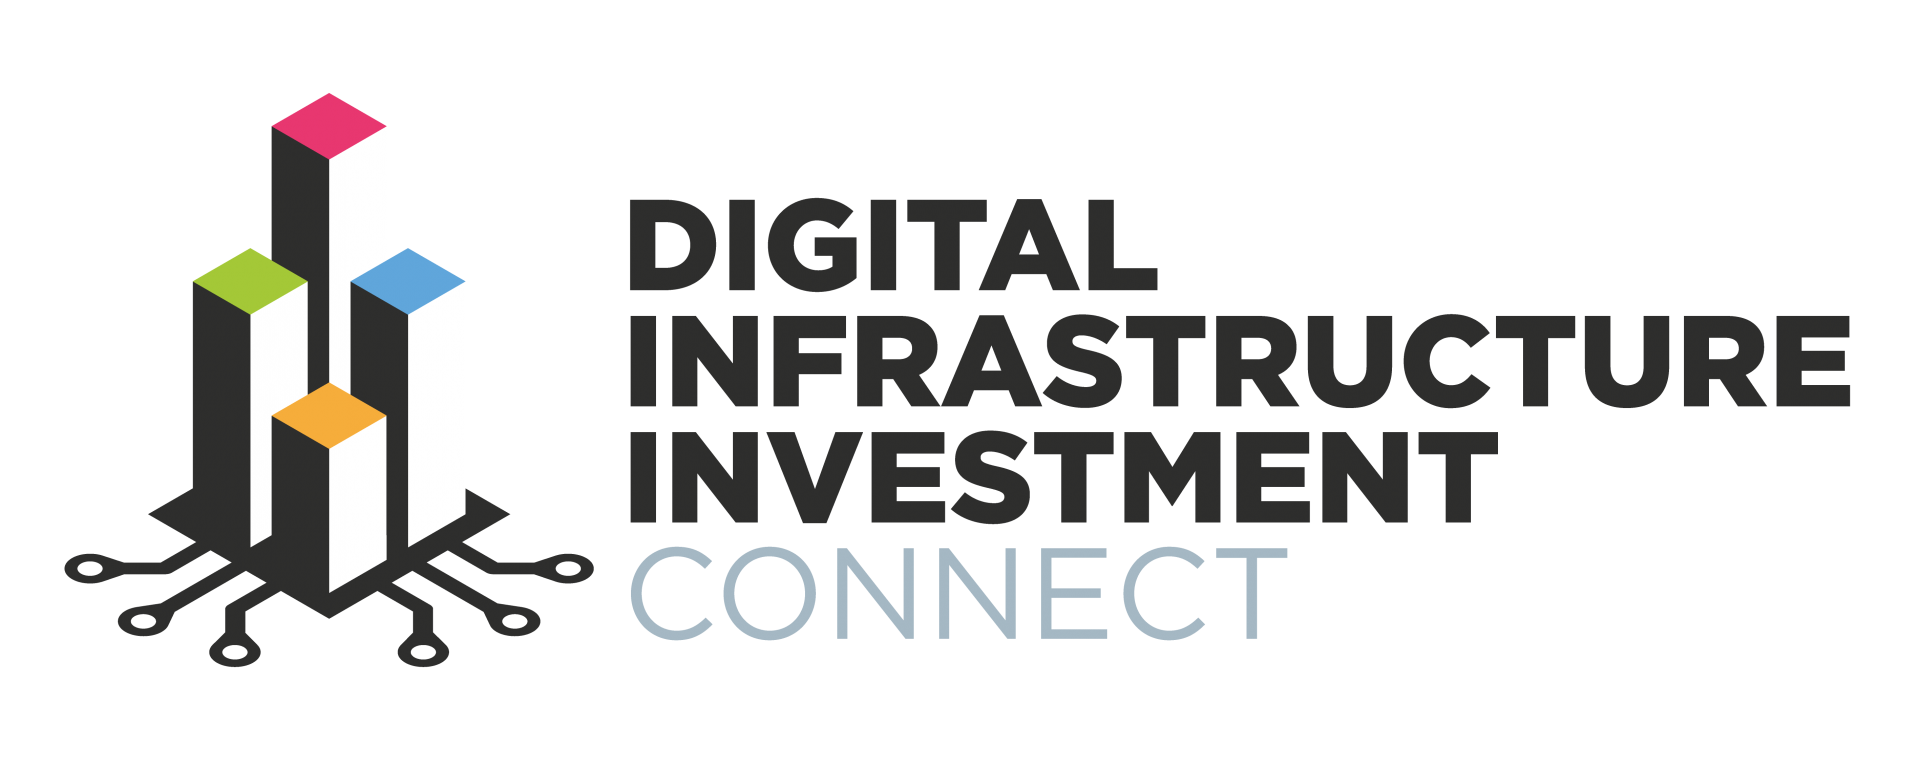 Digital Infrastructure Investment Connect